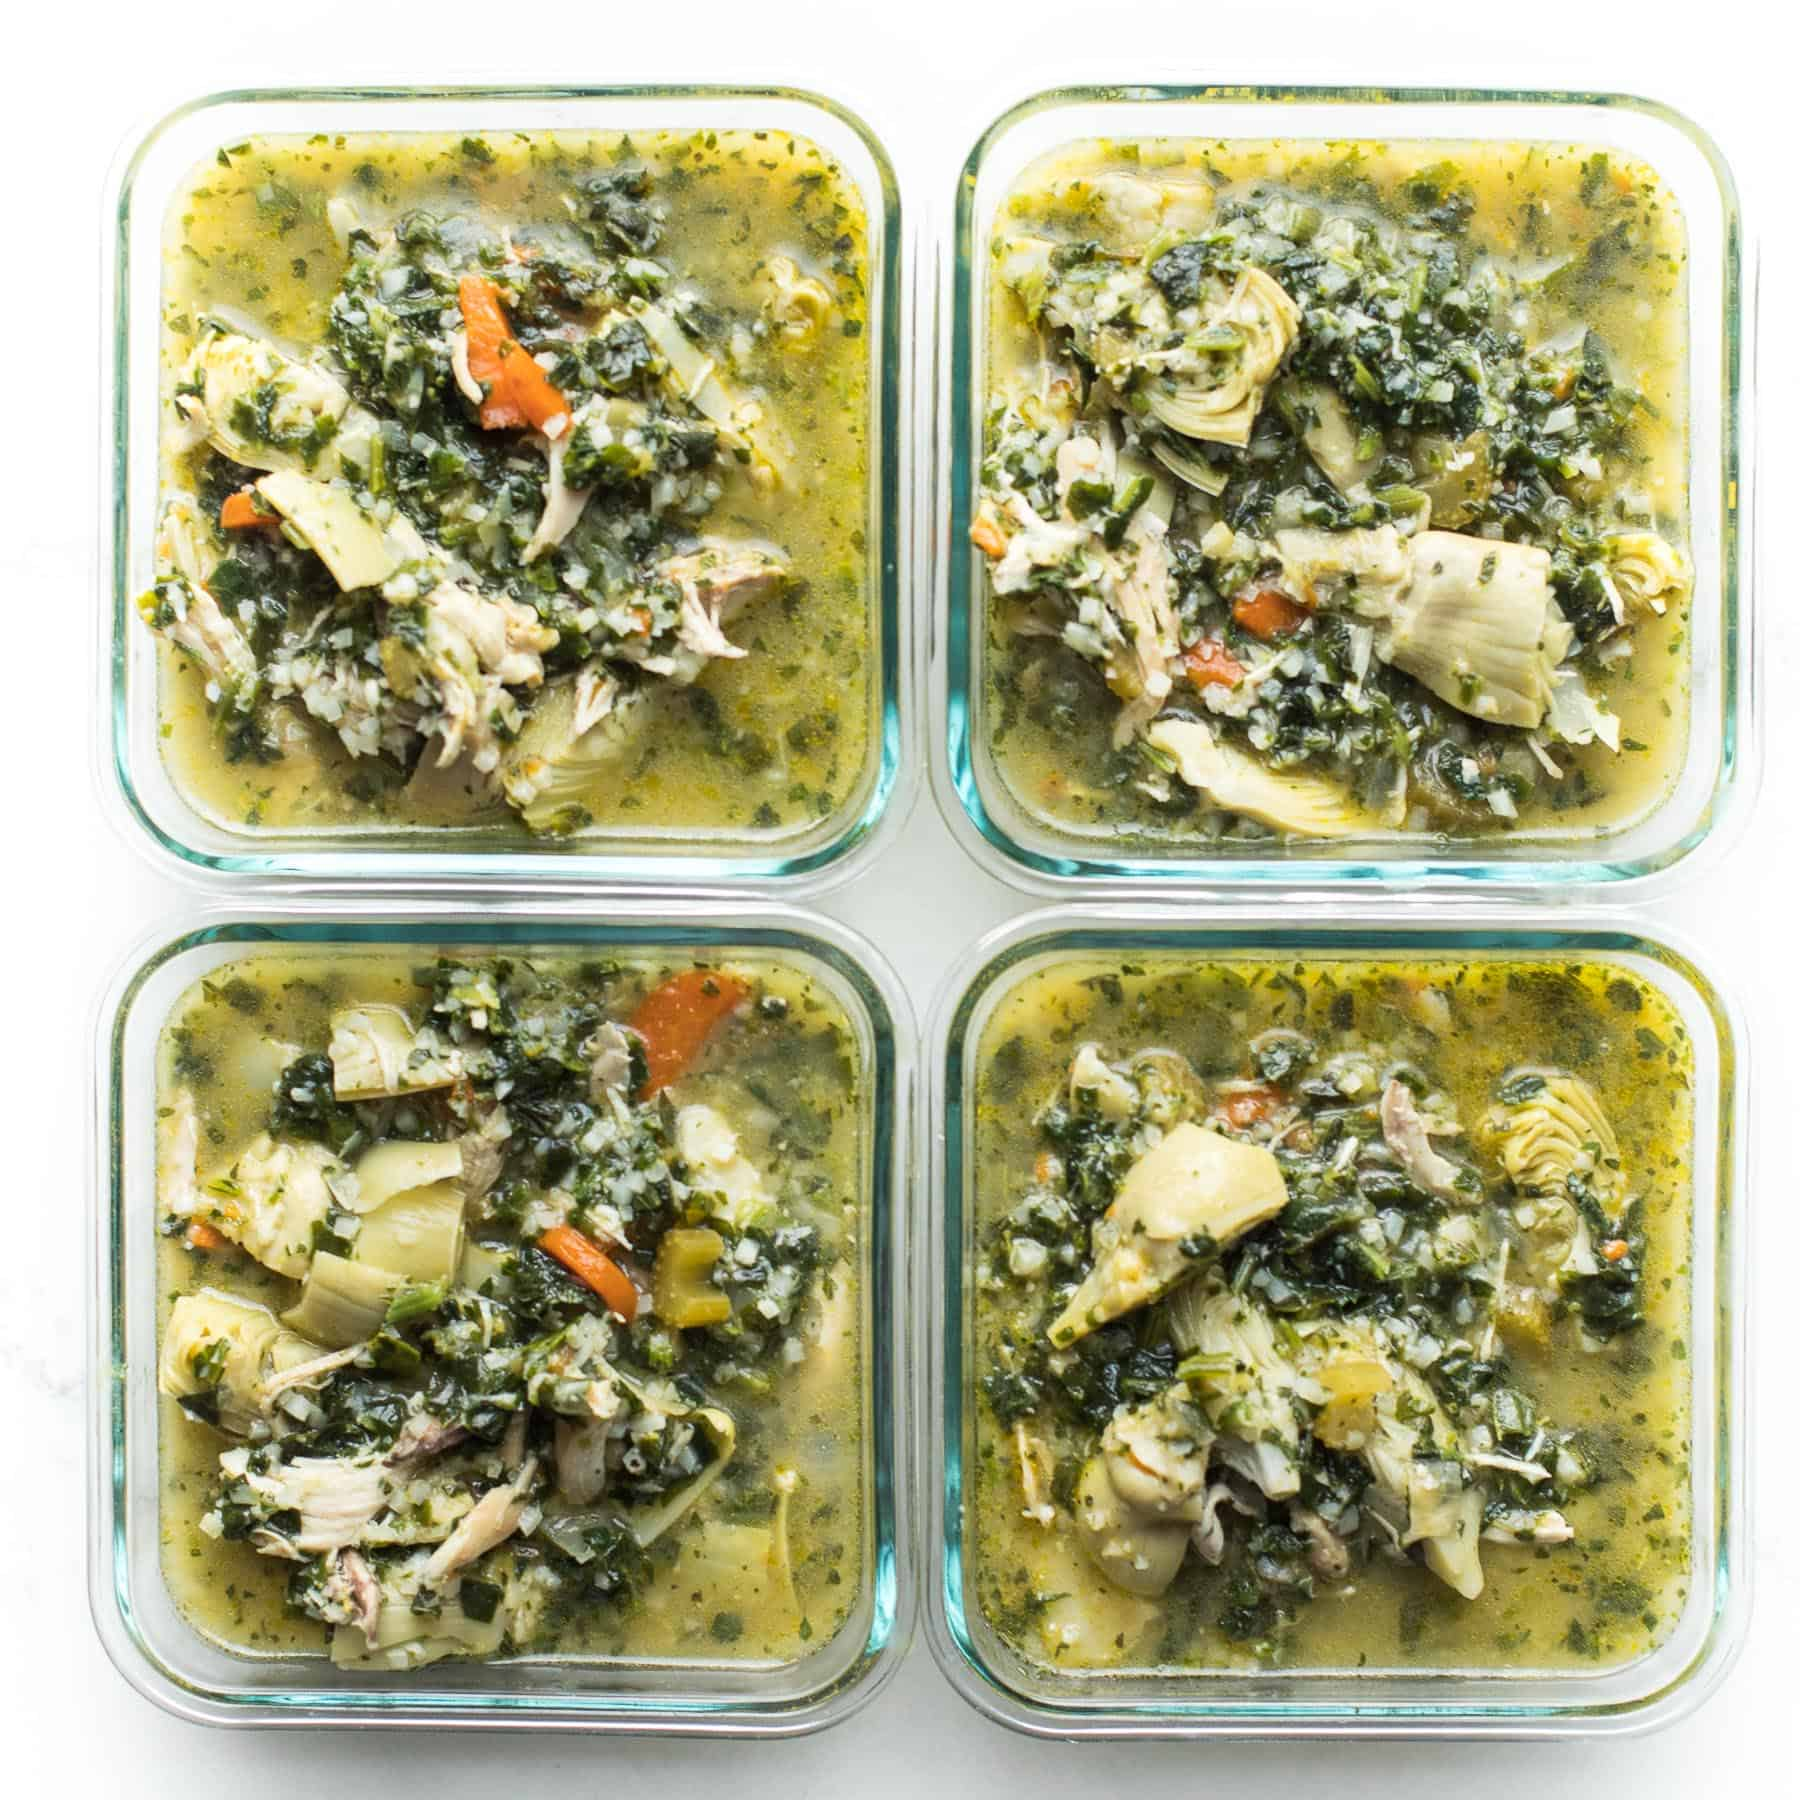 lemon artichoke chicken soup in meal prep containers